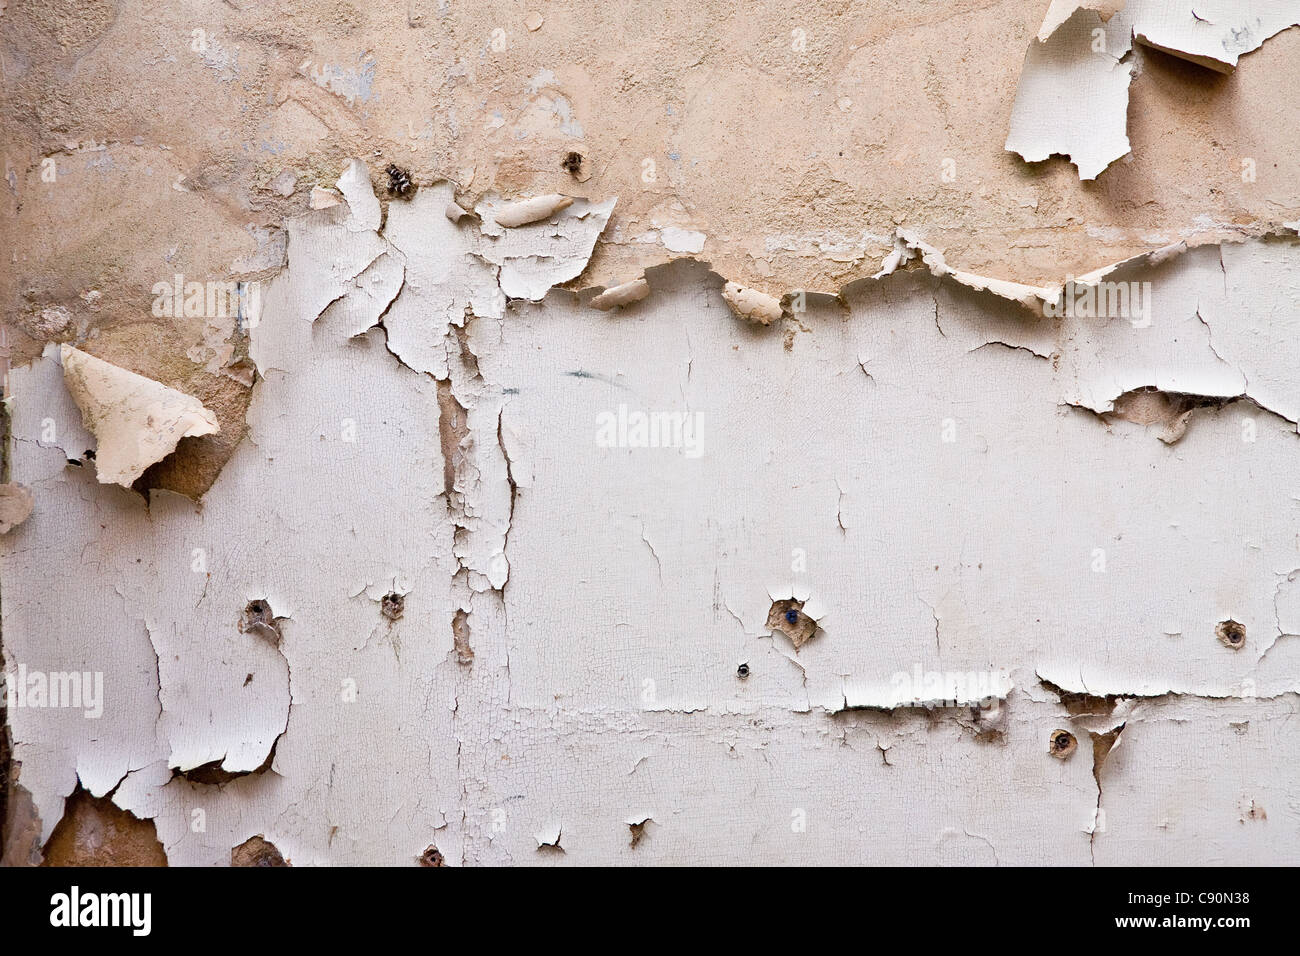 how to get peeling paint off walls